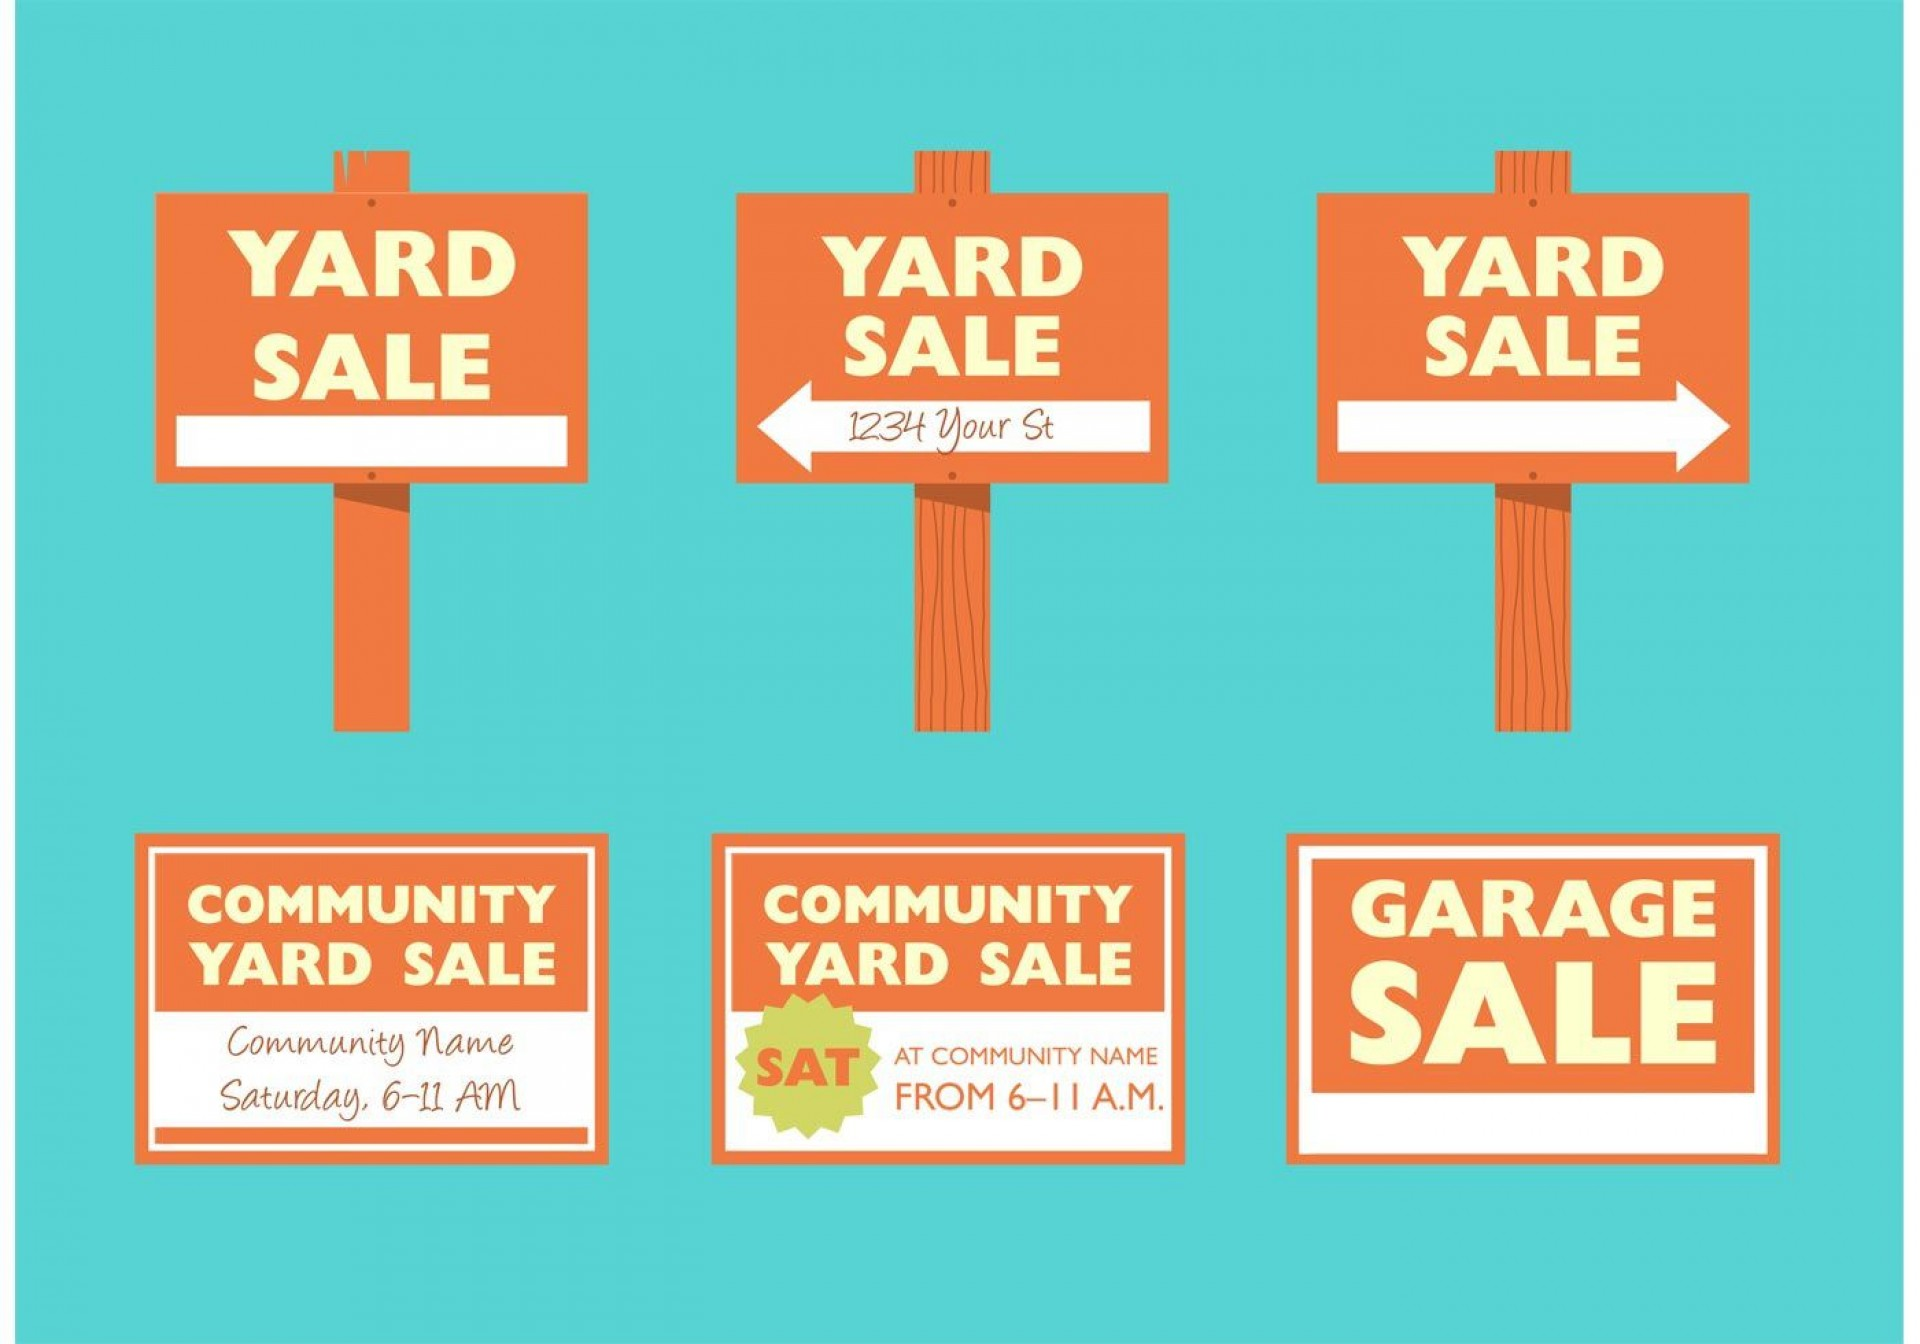 008 Staggering Garage Sale Sign Template Photo  Flyer Microsoft Word Community Yard Free Rummage1920